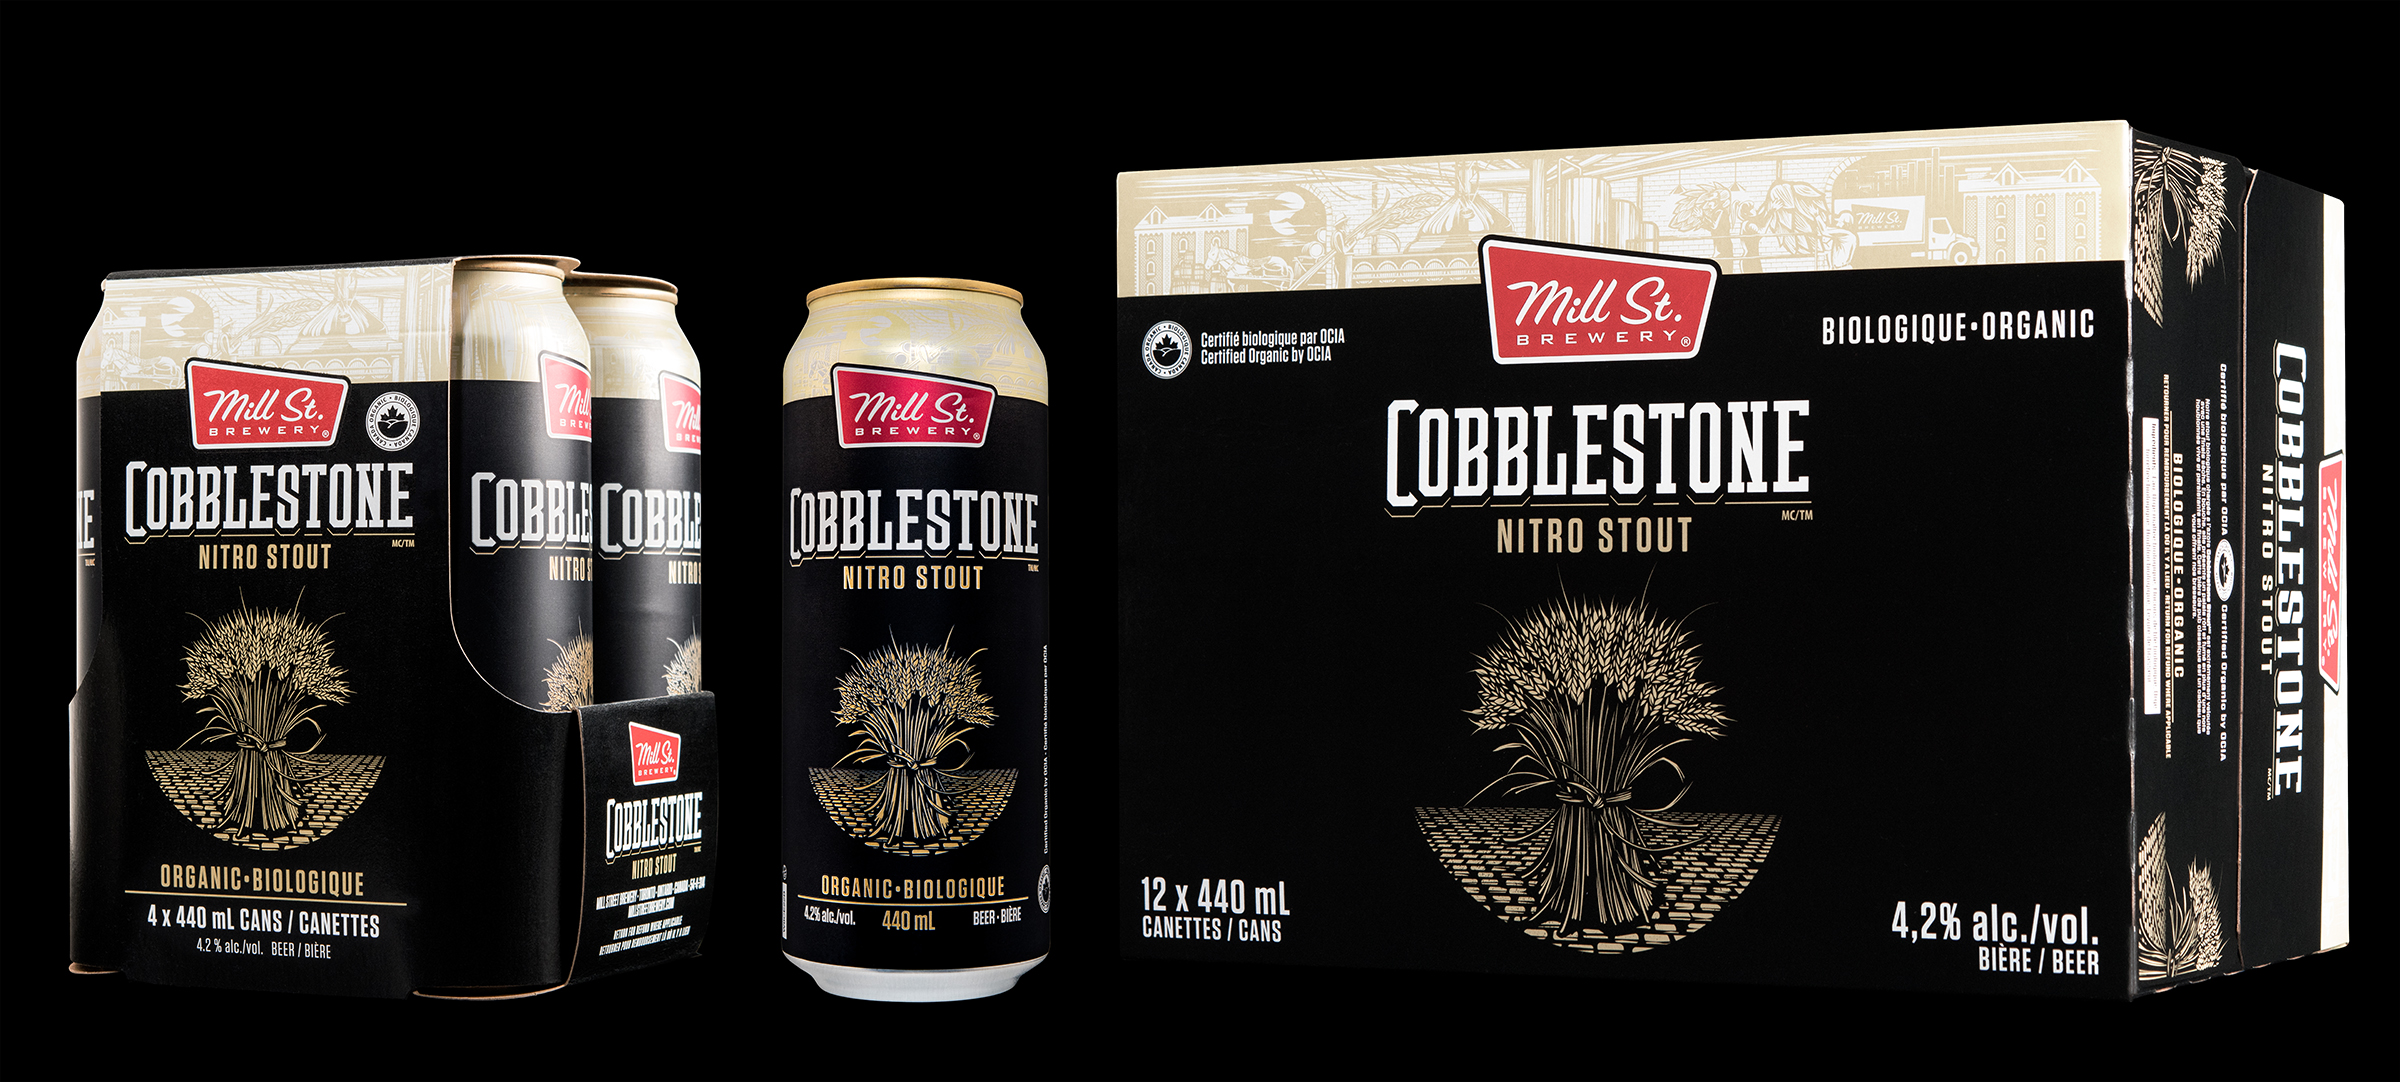 Packaging Design of Cobblestone Nitro Stout, for Mill Street Brewery